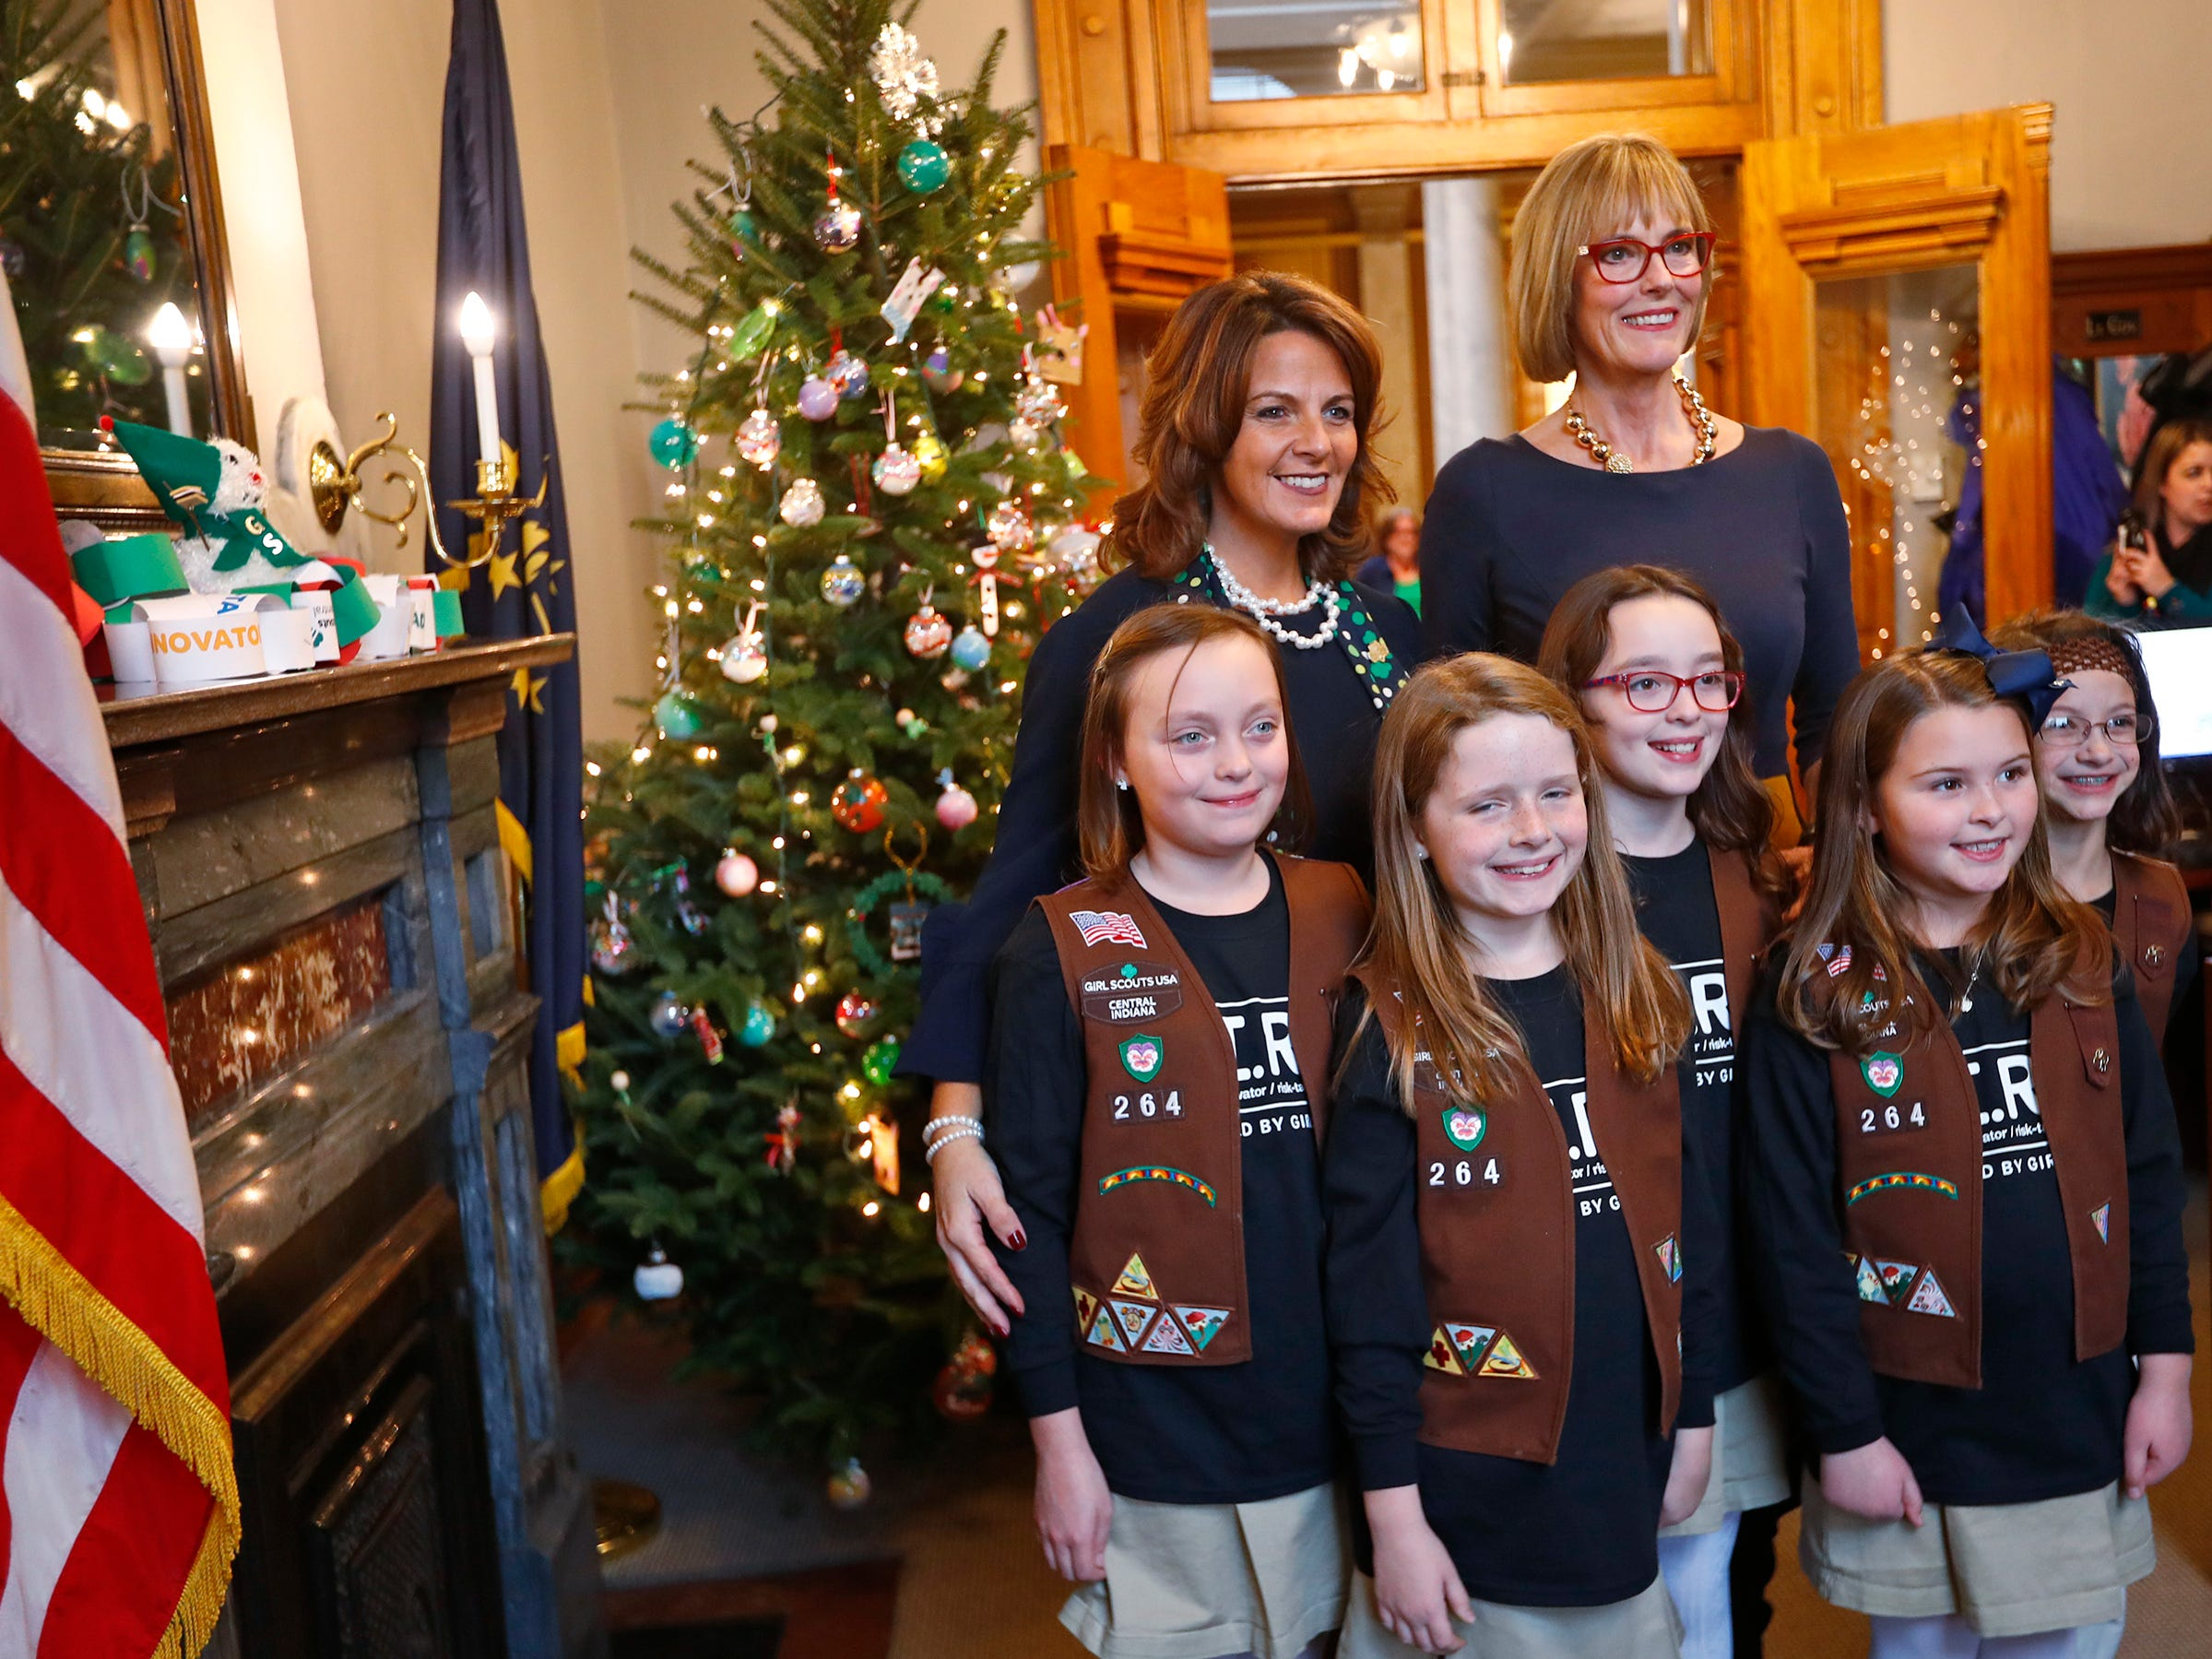 Girl Scouts of Central Indiana CEO Danielle Shockey and Lieutenant Governor Suzanne Crouch stand behind Brownies, from left, Colette Pardo, Vivian Bruno, Josie Pardo, Katie Callahan, and Ivy Lara, after they decorated Crouch's Statehouse tree for the holidays, Wednesday, Dec. 5, 2018.  They used ornaments created by Girl Scouts from across Central Indiana for the tree.